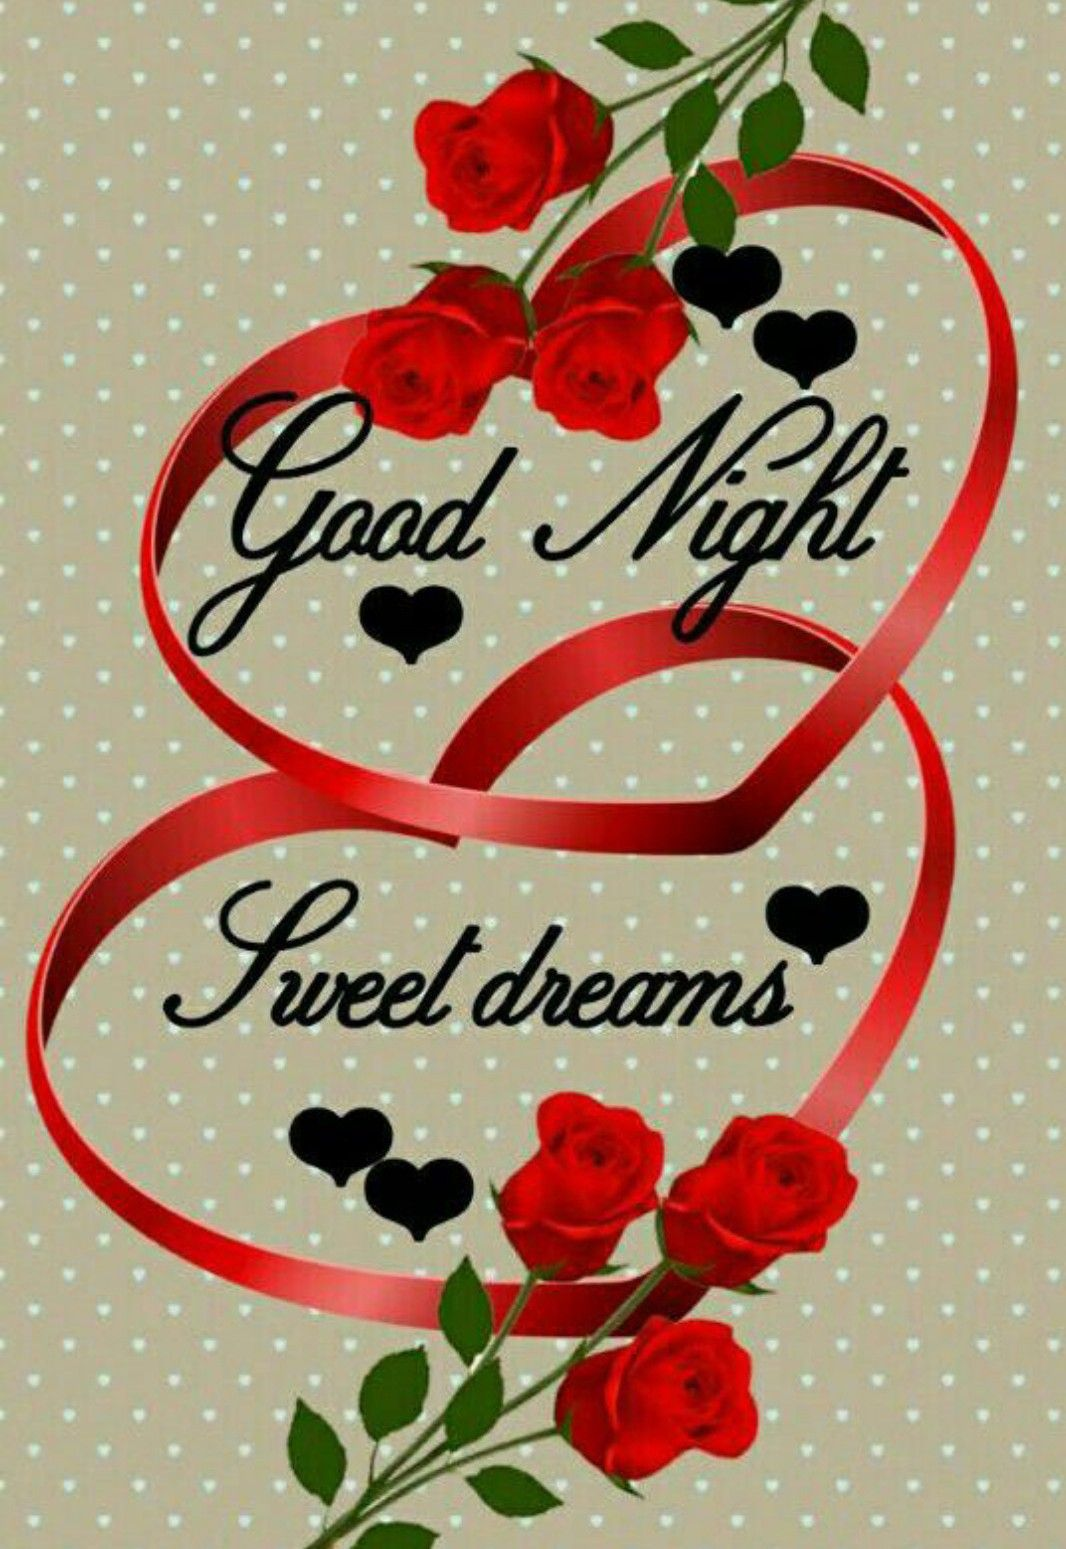 Good night sweet dreams | Good Wishes | Good night quotes, Night